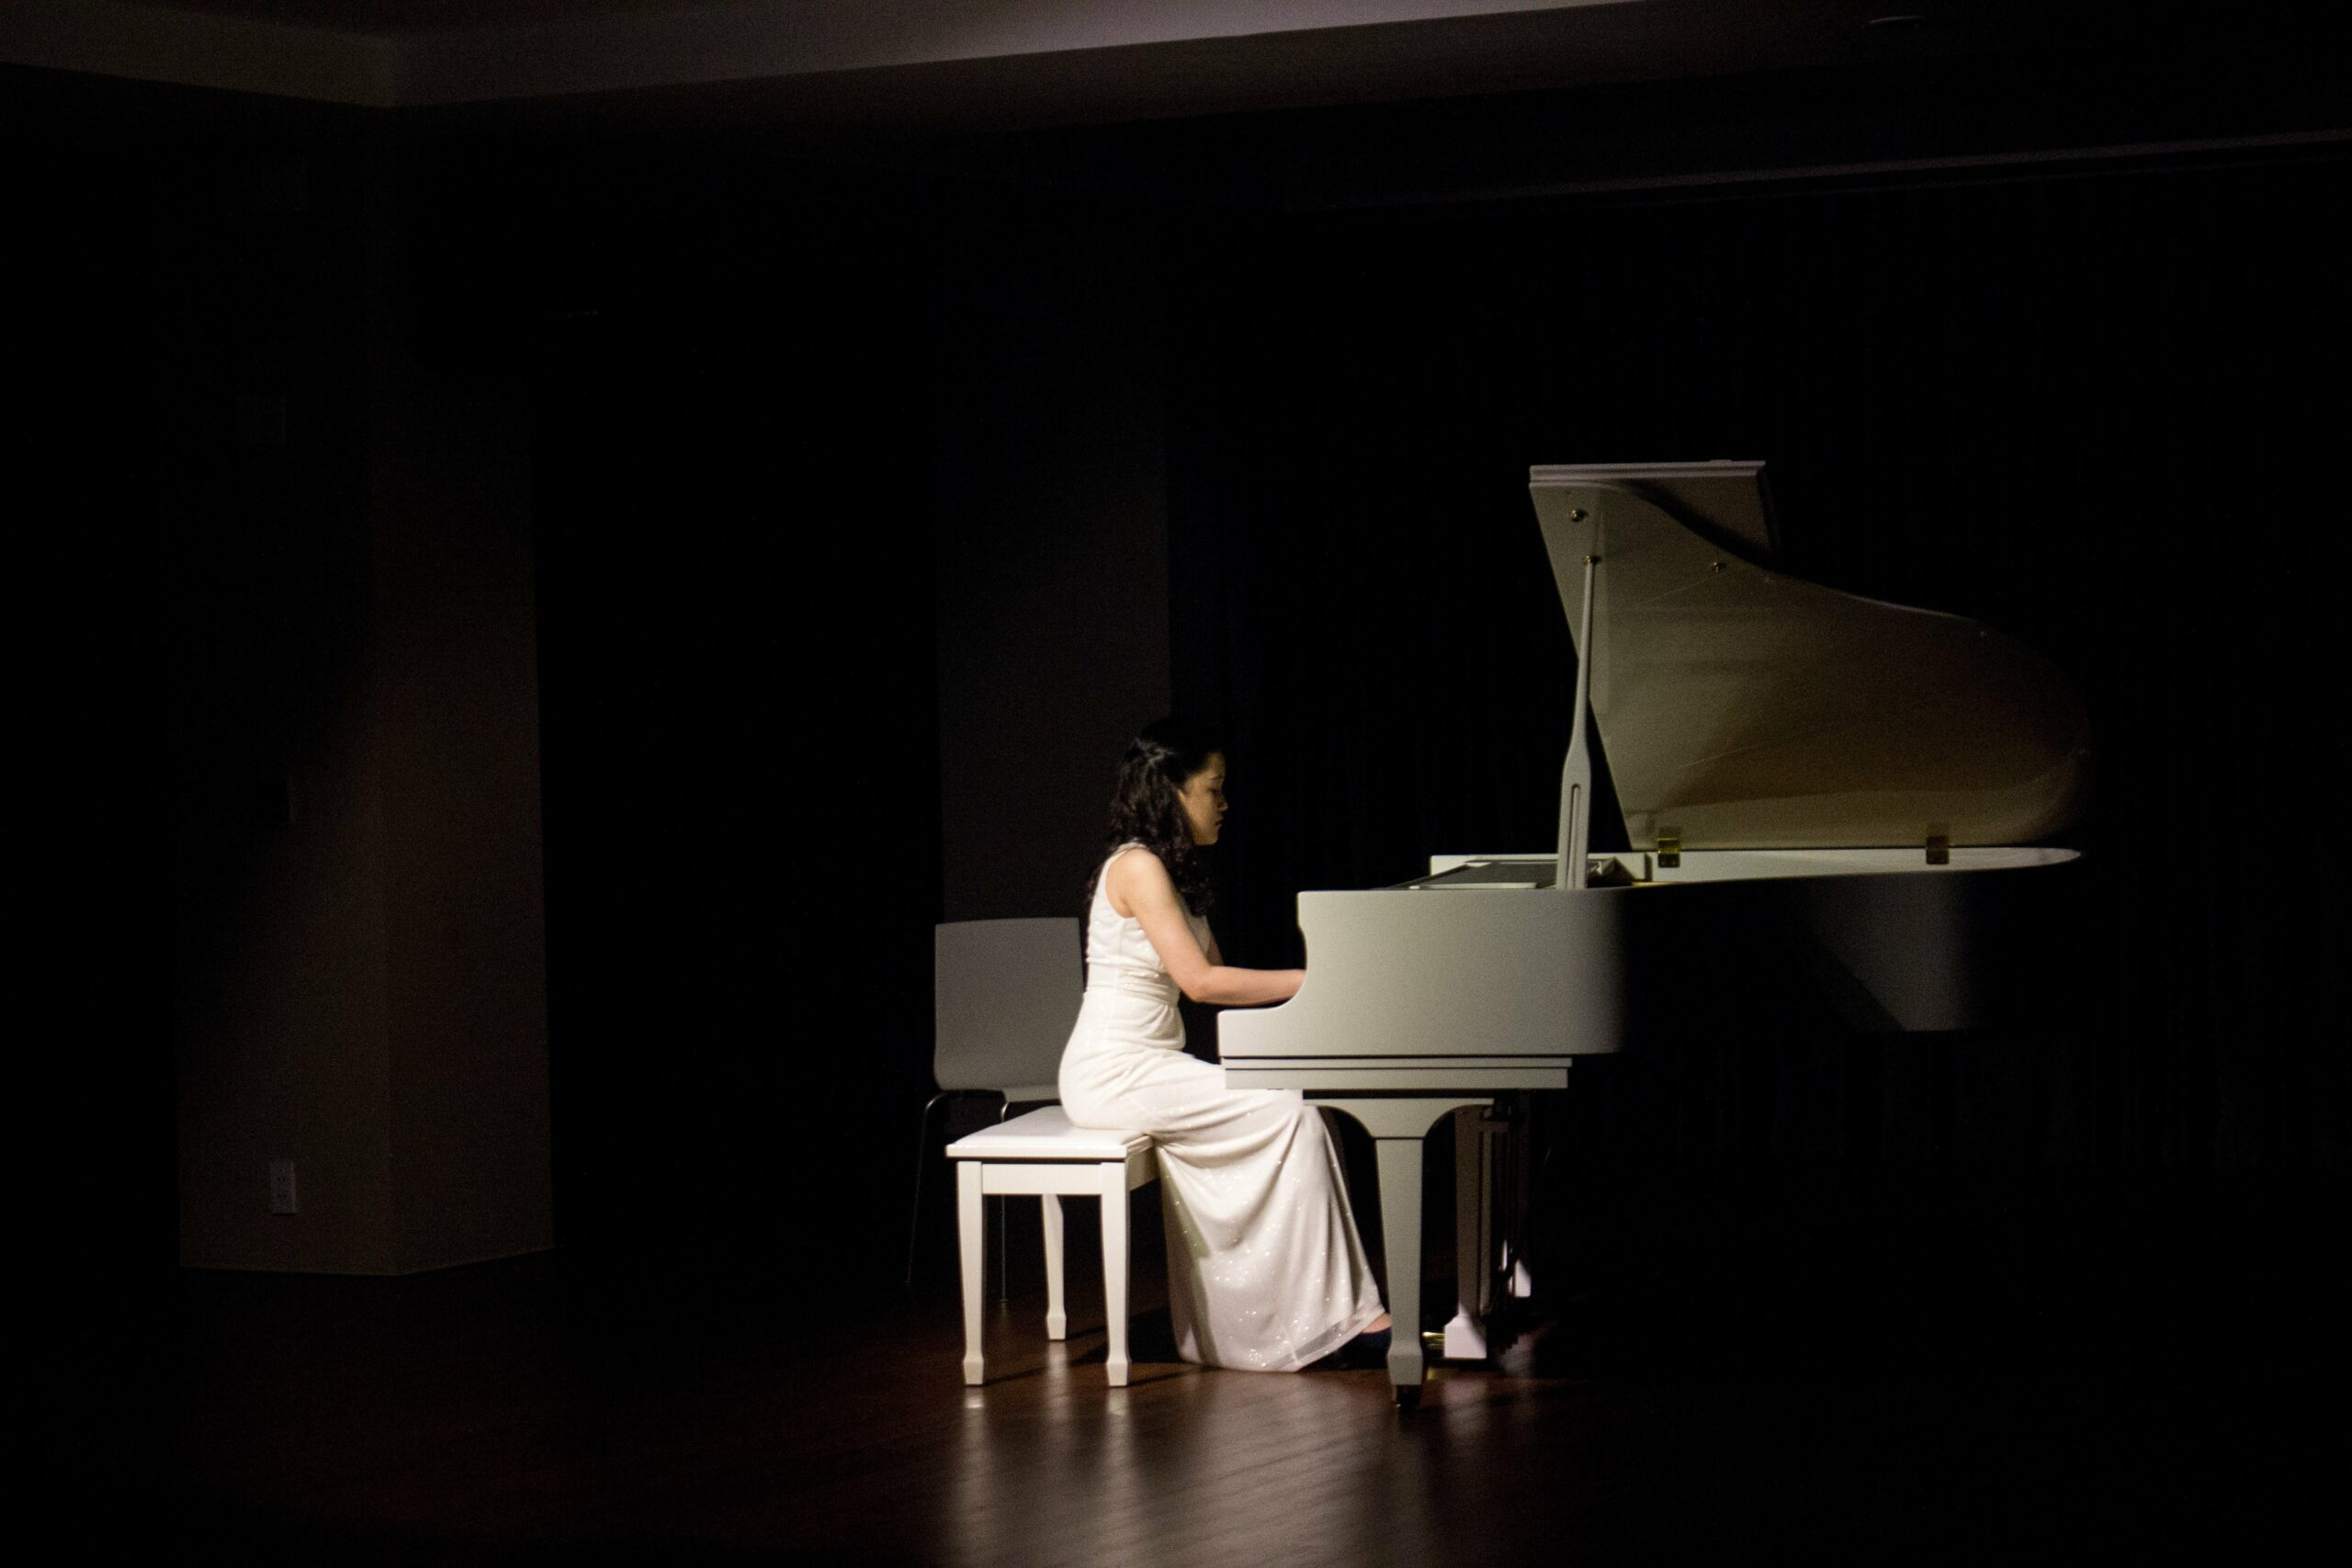 famous piano players - female popstars edition